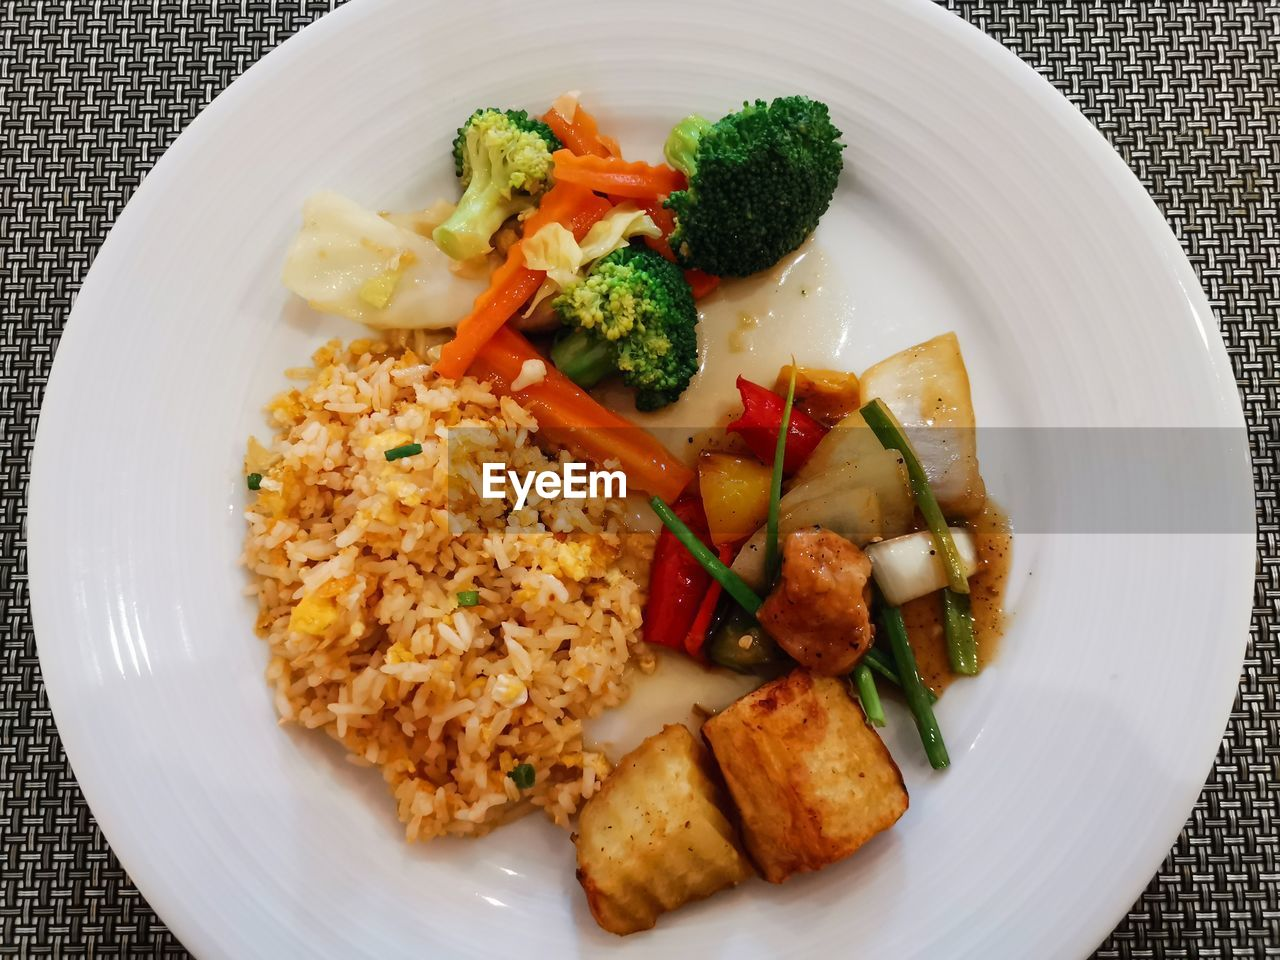 food and drink, food, plate, ready-to-eat, freshness, vegetable, healthy eating, wellbeing, indoors, serving size, directly above, broccoli, still life, high angle view, no people, table, meal, pepper, close-up, green, garnish, place mat, vegetarian food